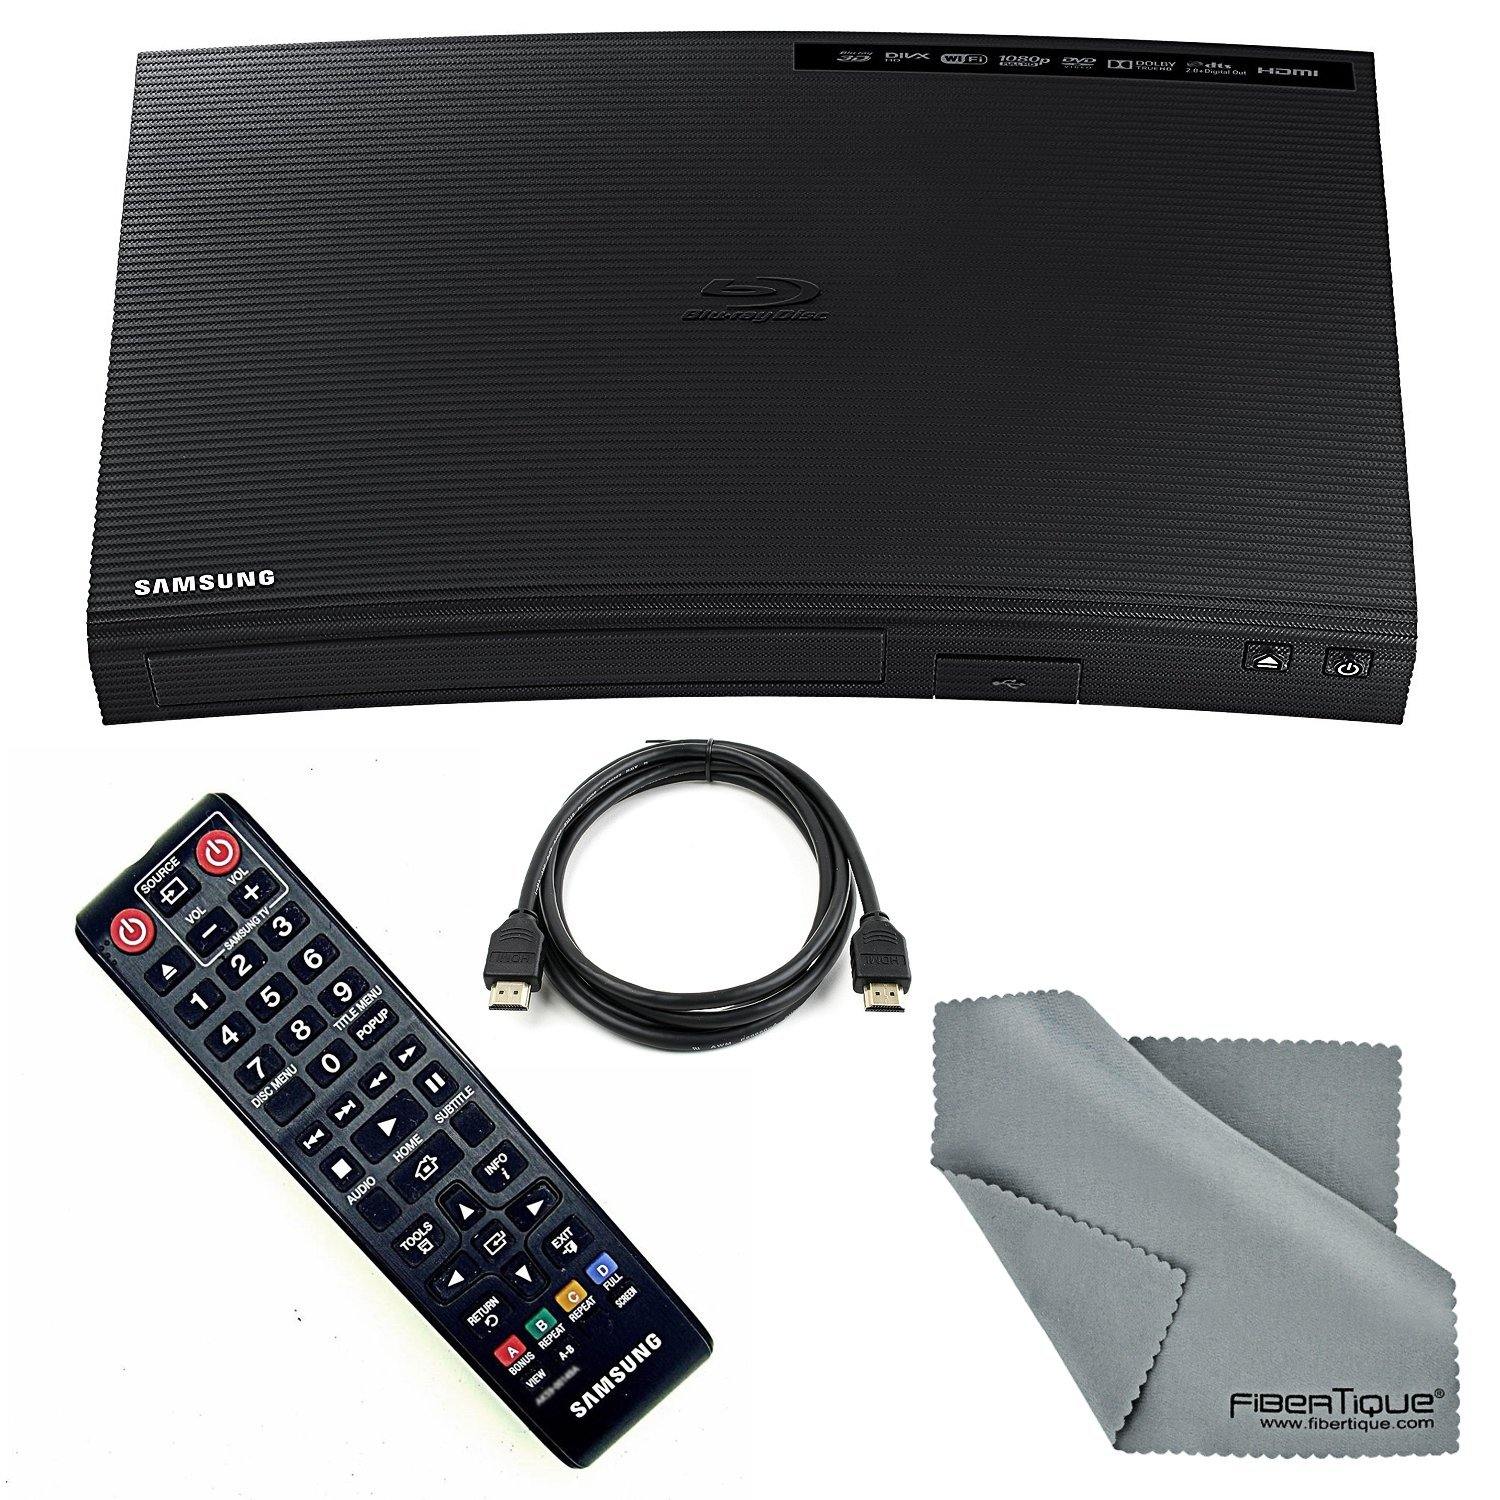 Samsung BD-J5900 Wi-Fi & 3D Blu-Ray Disc Player HDMI Cable + FiberTique Cleaning Cloth + Remote